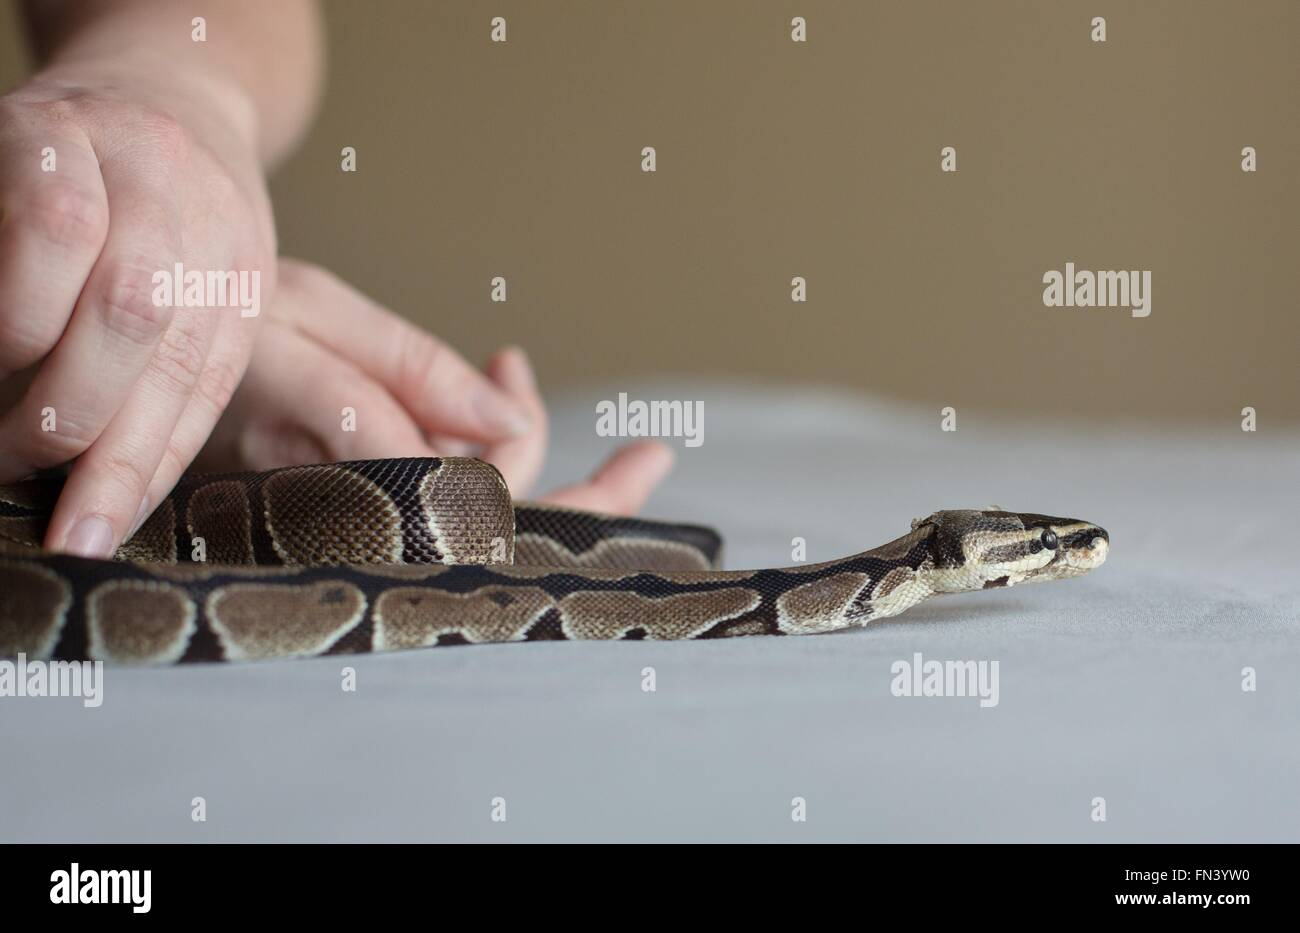 Hands holding a ball python snake on a table. - Stock Image